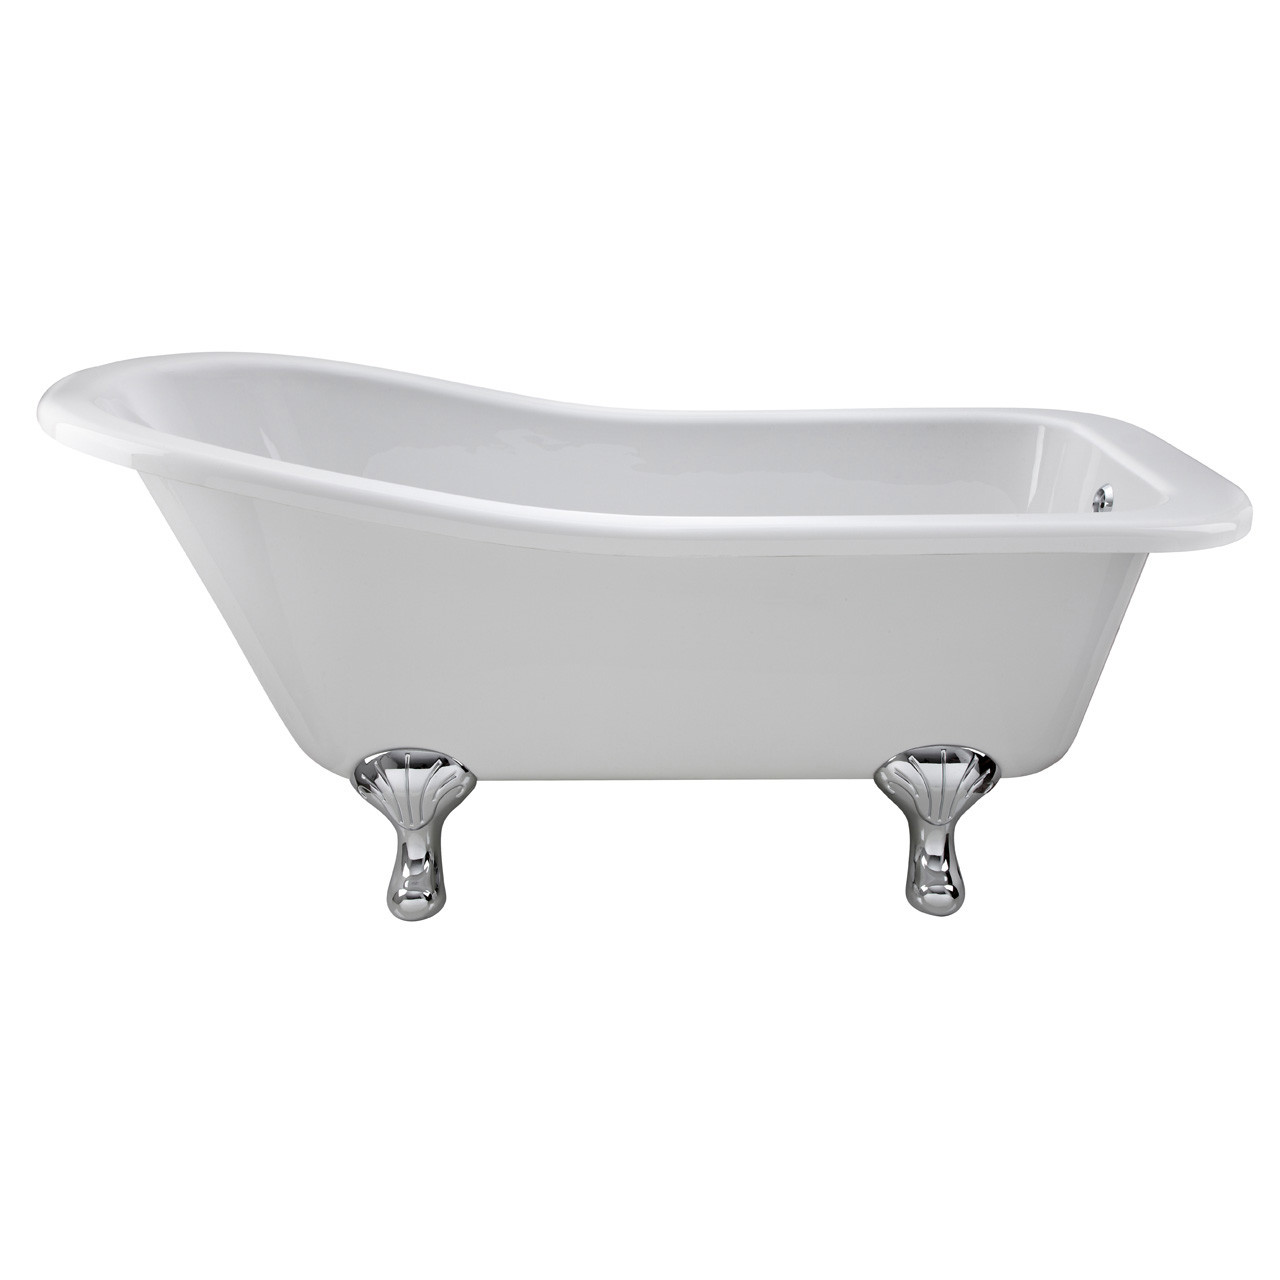 Premier White Kensington 1500 Single Ended Freestanding Bath with Corbel Legs - RL1490T